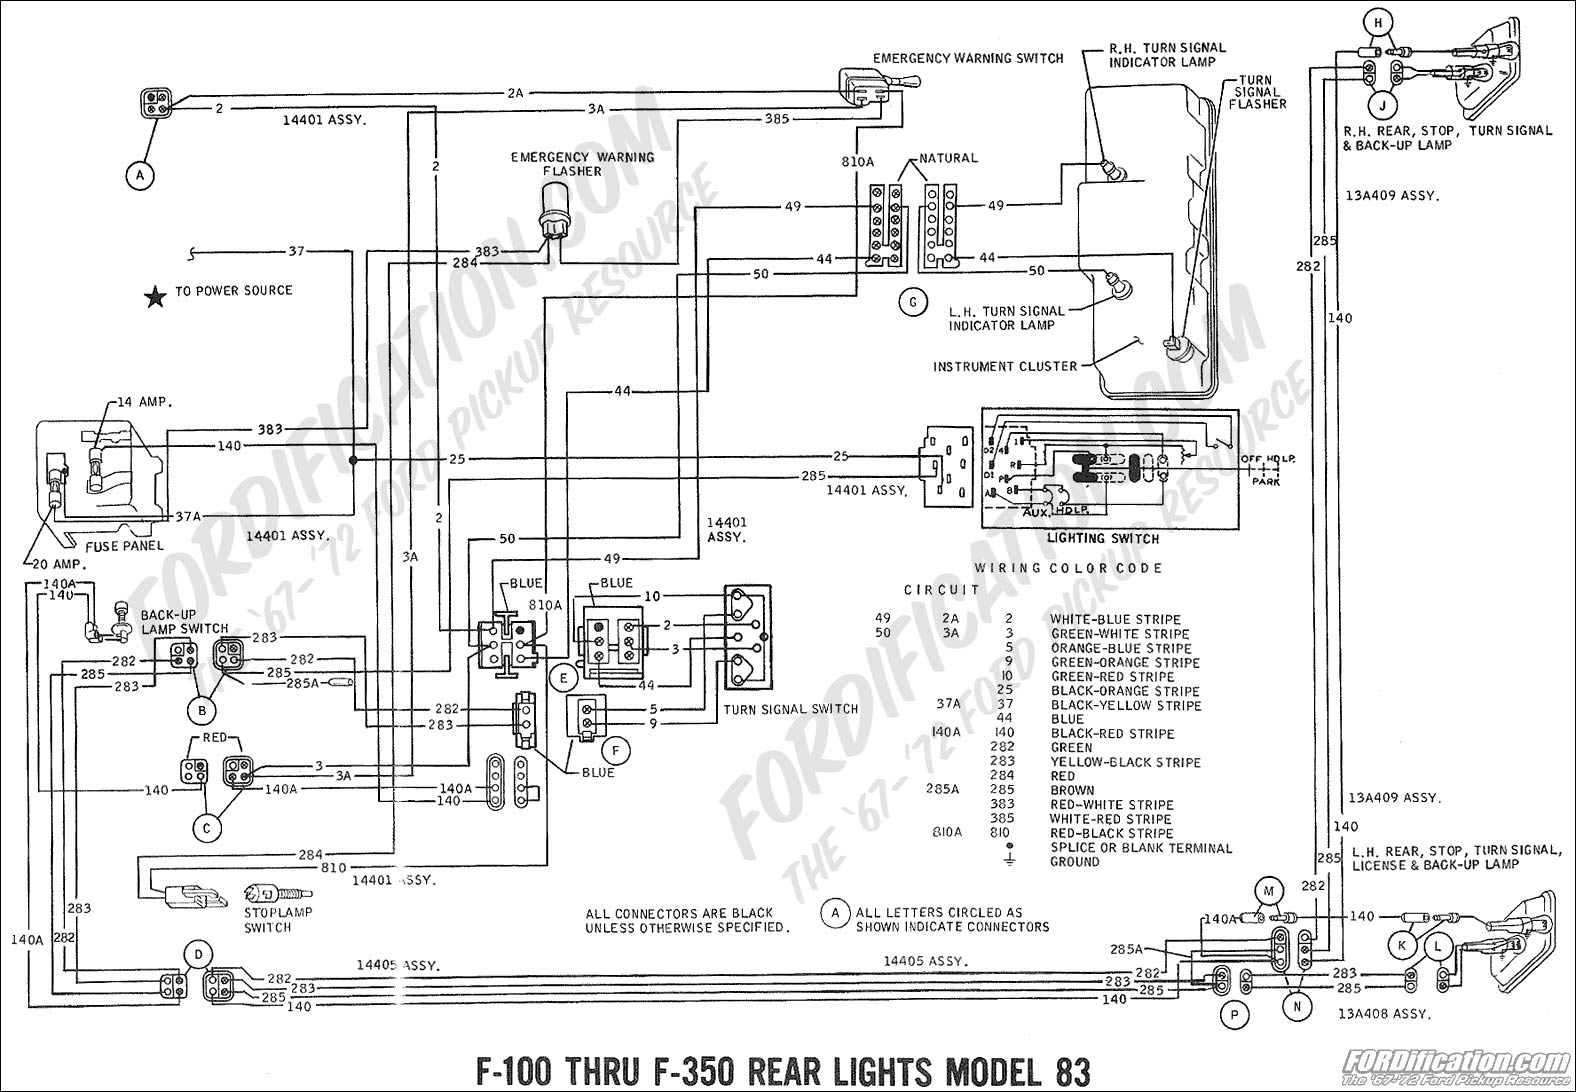 Lighting Wiring Diagram For 1977 Ford F150 : 42 Wiring